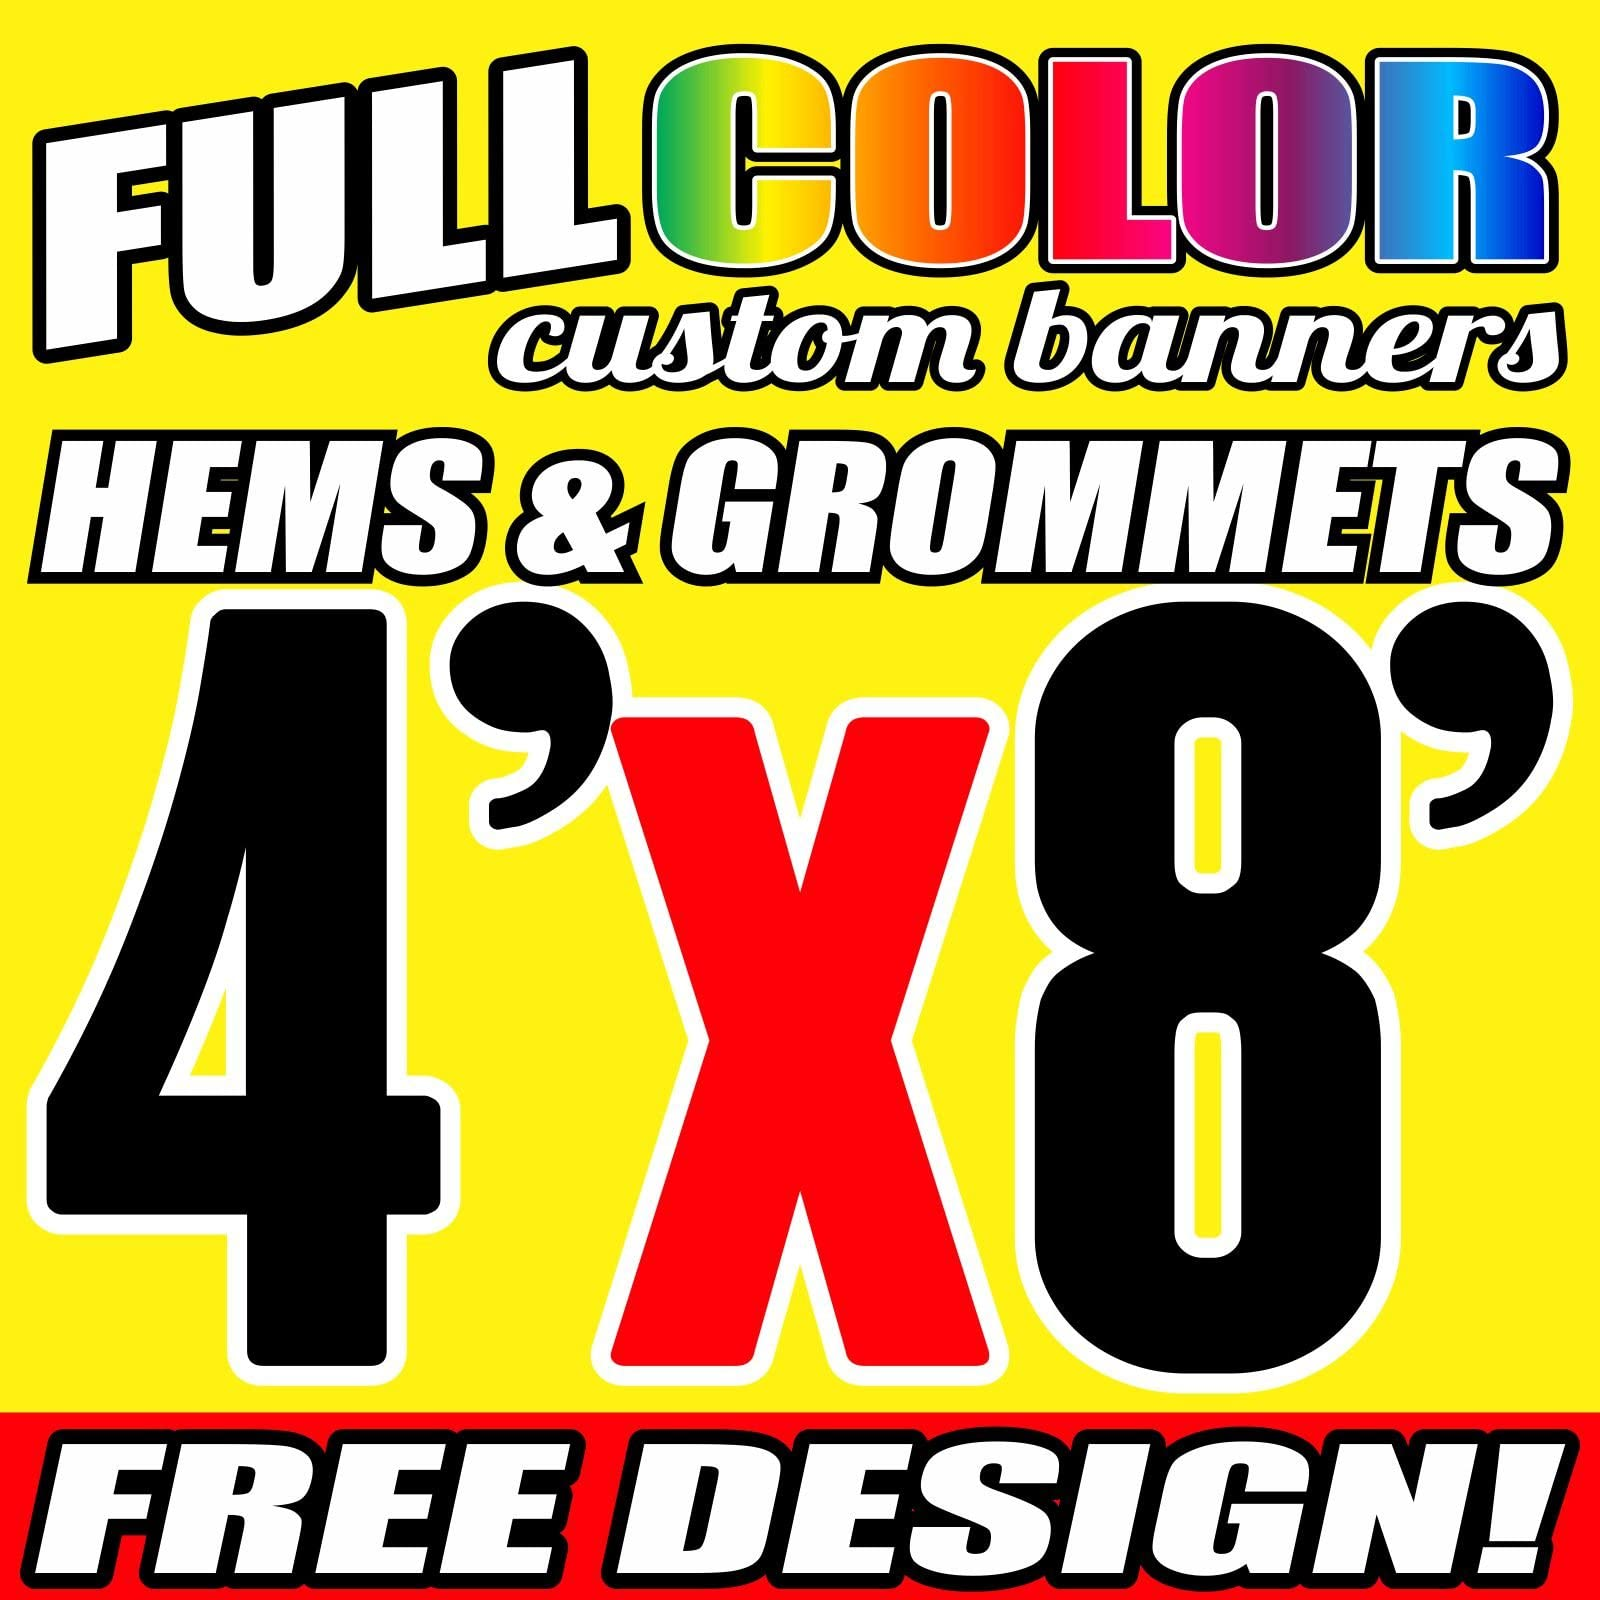 WE BUY NEW /& USED ELECTRONICS BANNER VARIOUS SIZES VINYL BANNERS 4 X 8